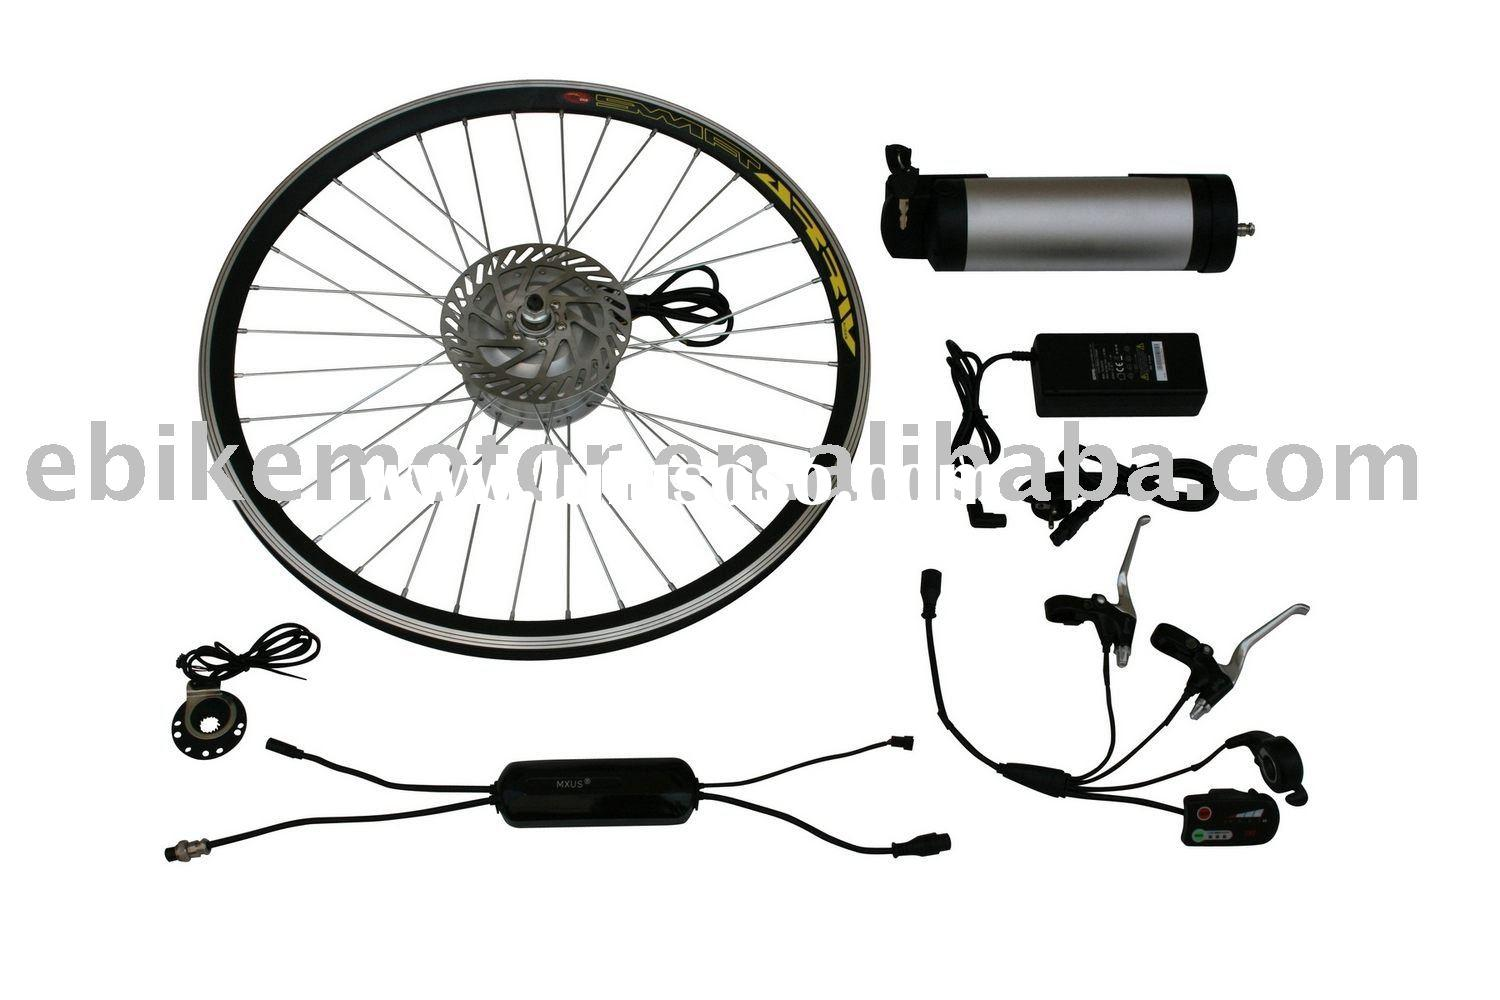 Bicycle Gear System